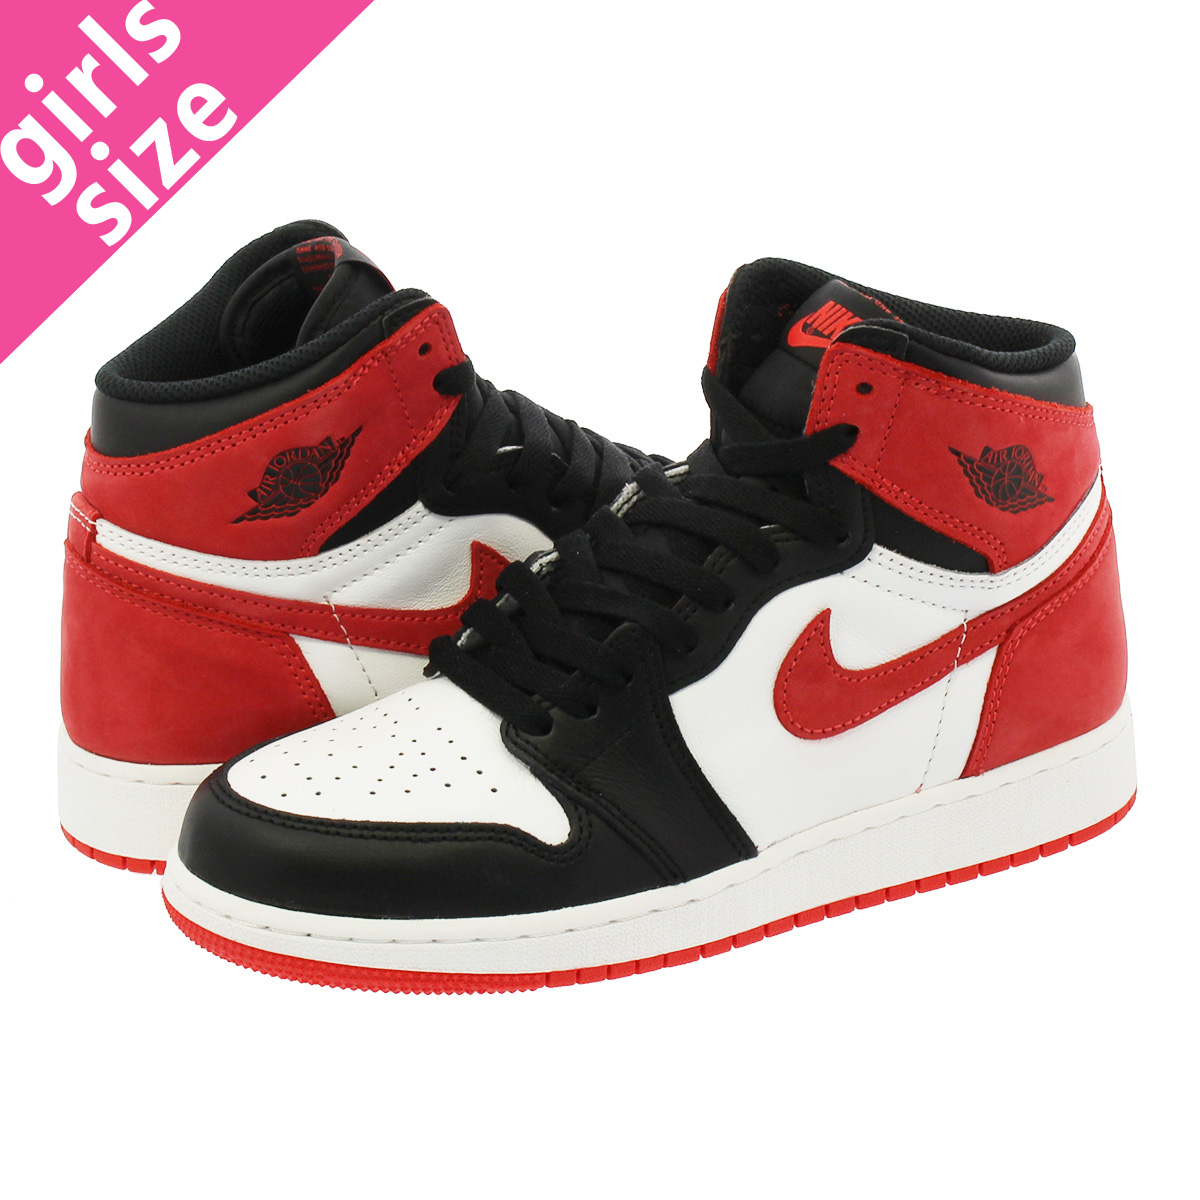 the latest 879b4 fed71 NIKE AIR JORDAN 1 RETRO HIGH OG BG耐克空气乔丹1重新流行高OG BG SUMMIT  WHITE BLACK TRACK RED